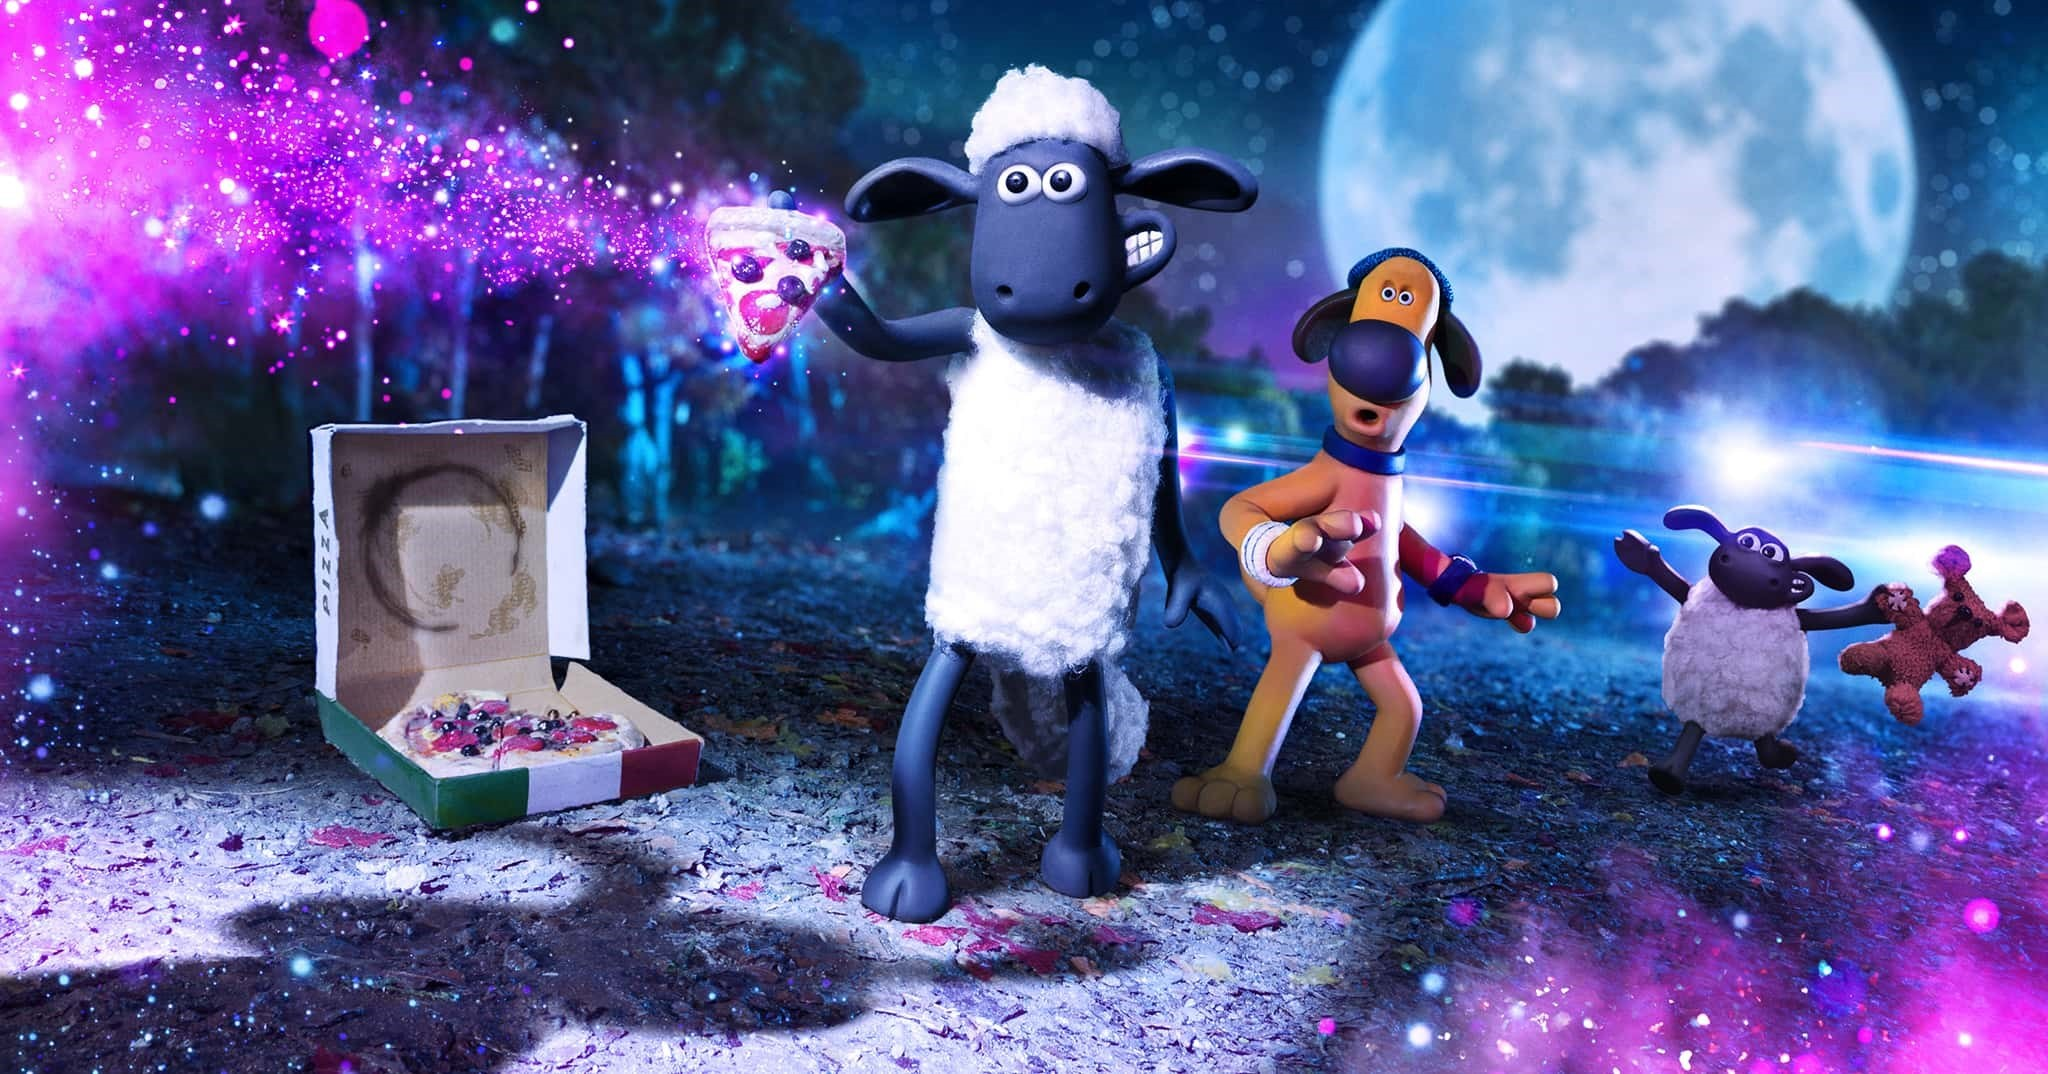 (C)2019  Aardman Animations Ltd and Studiocanal SAS. All Rights Reserved.